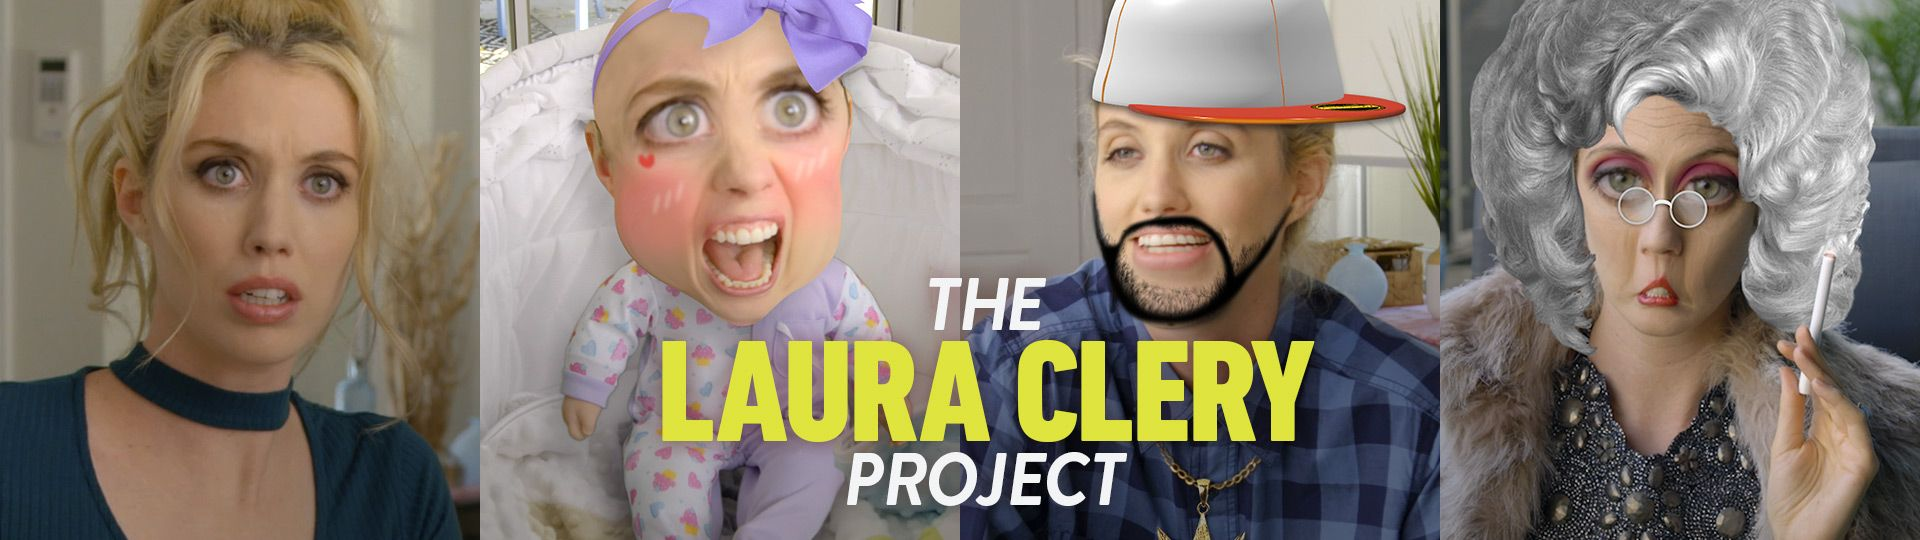 The Laura Clery Project on FREECABLE TV